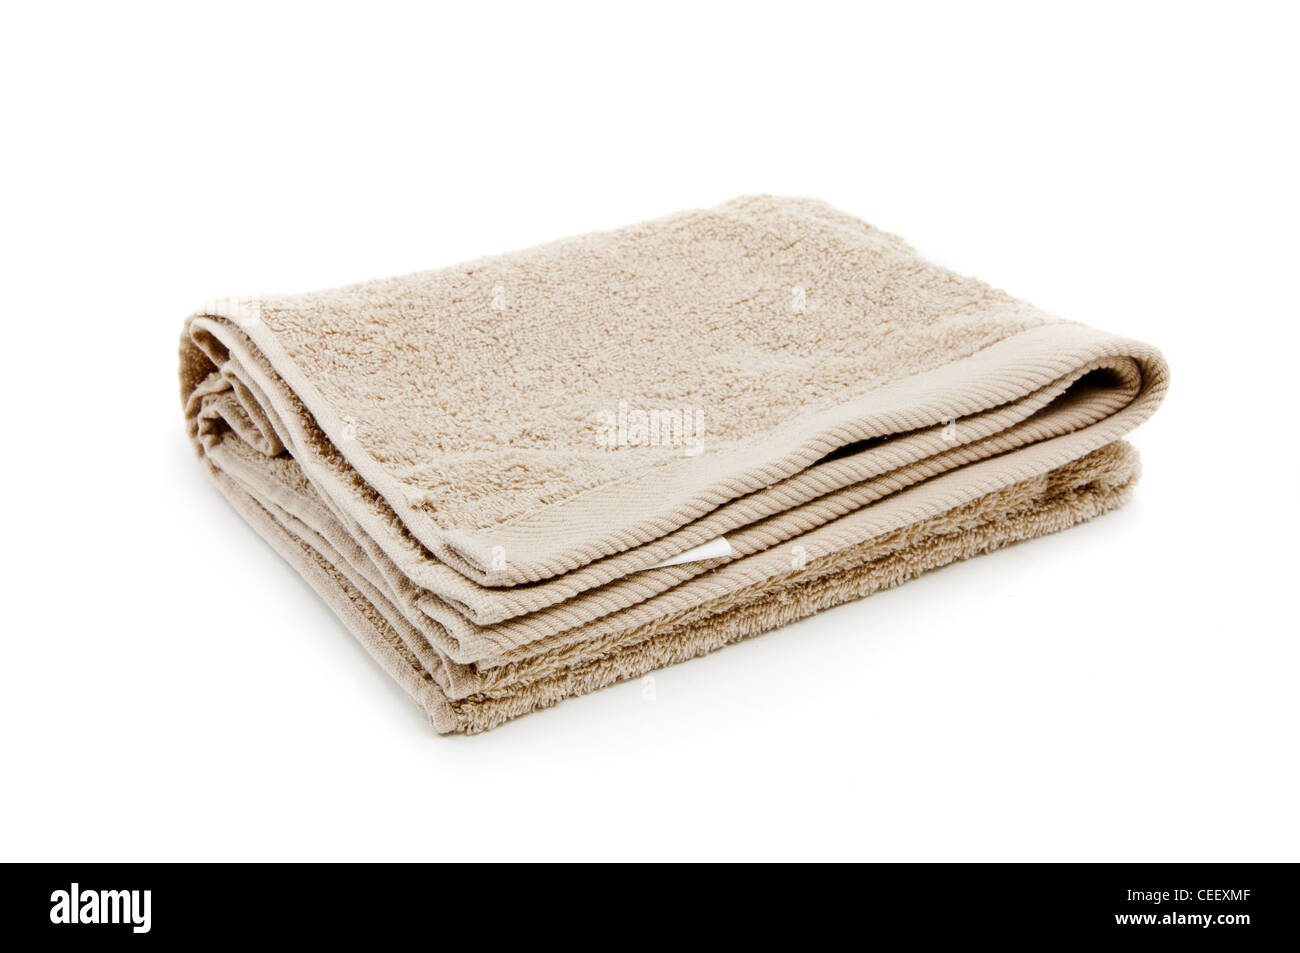 Beautifu new towels, image is taken over a white background - Stock Image